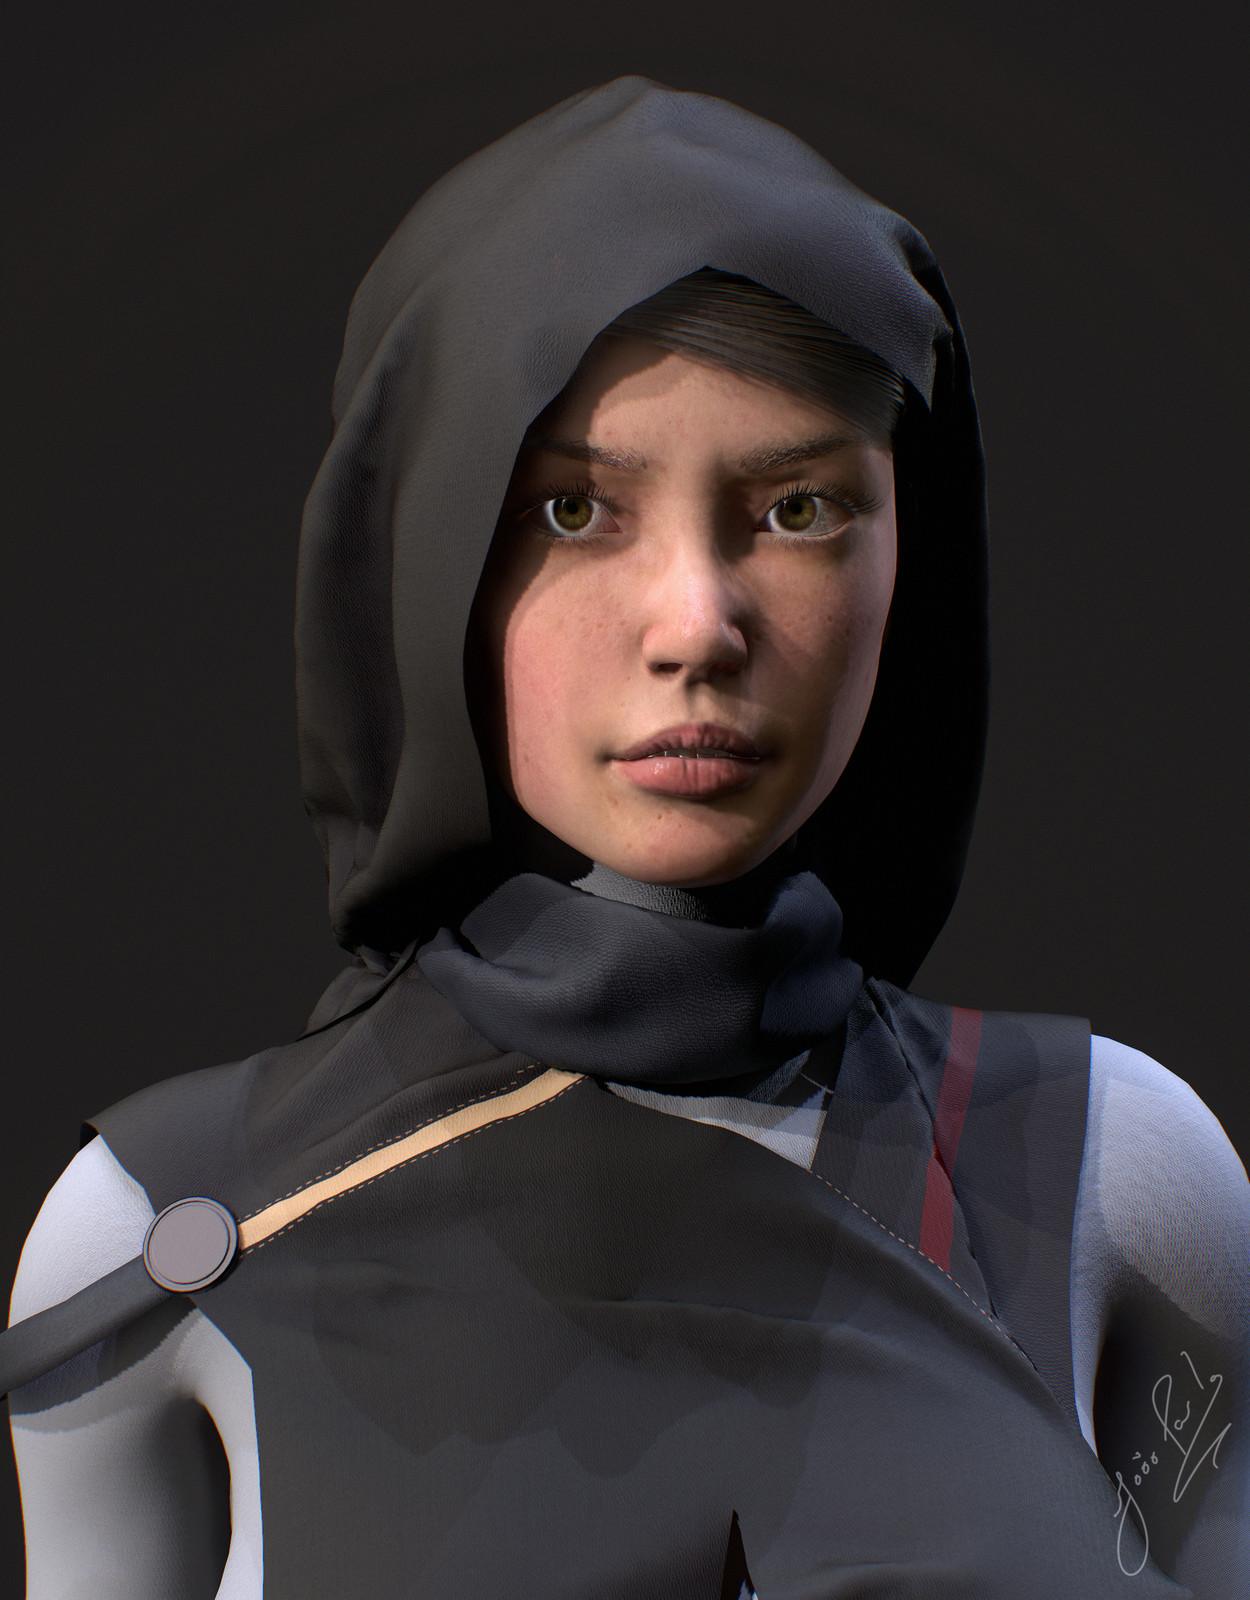 Melissa - Real time character